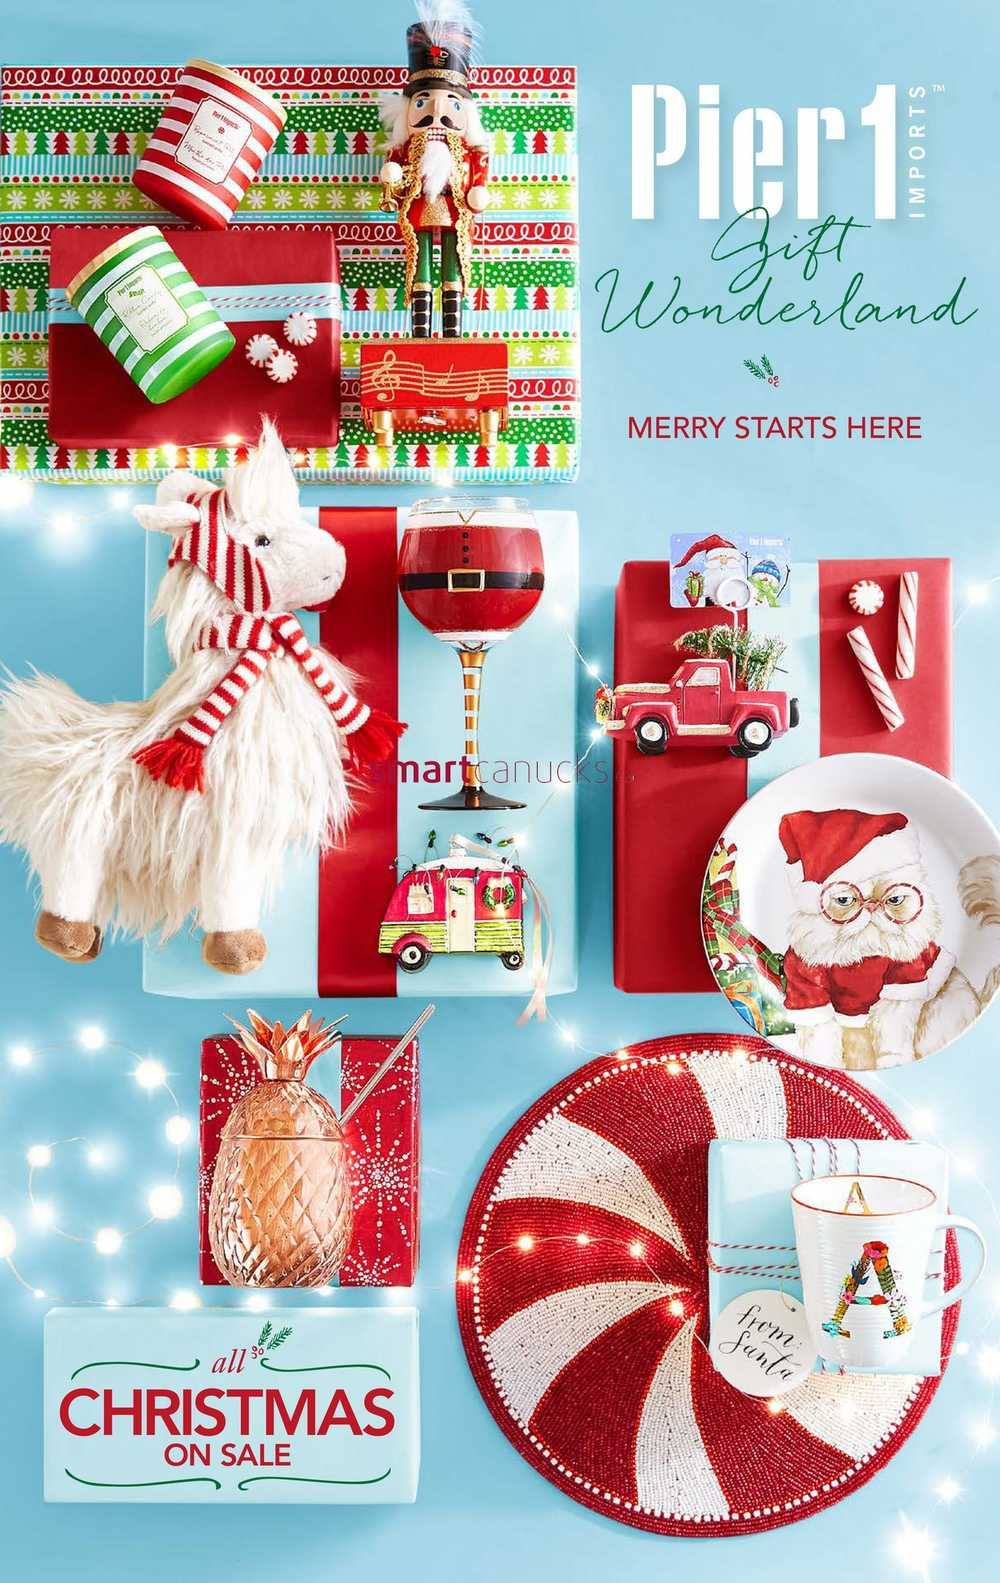 Pier 1 Imports Flyer November 28 to January 1. Pier 1 Imports Canada Flyers